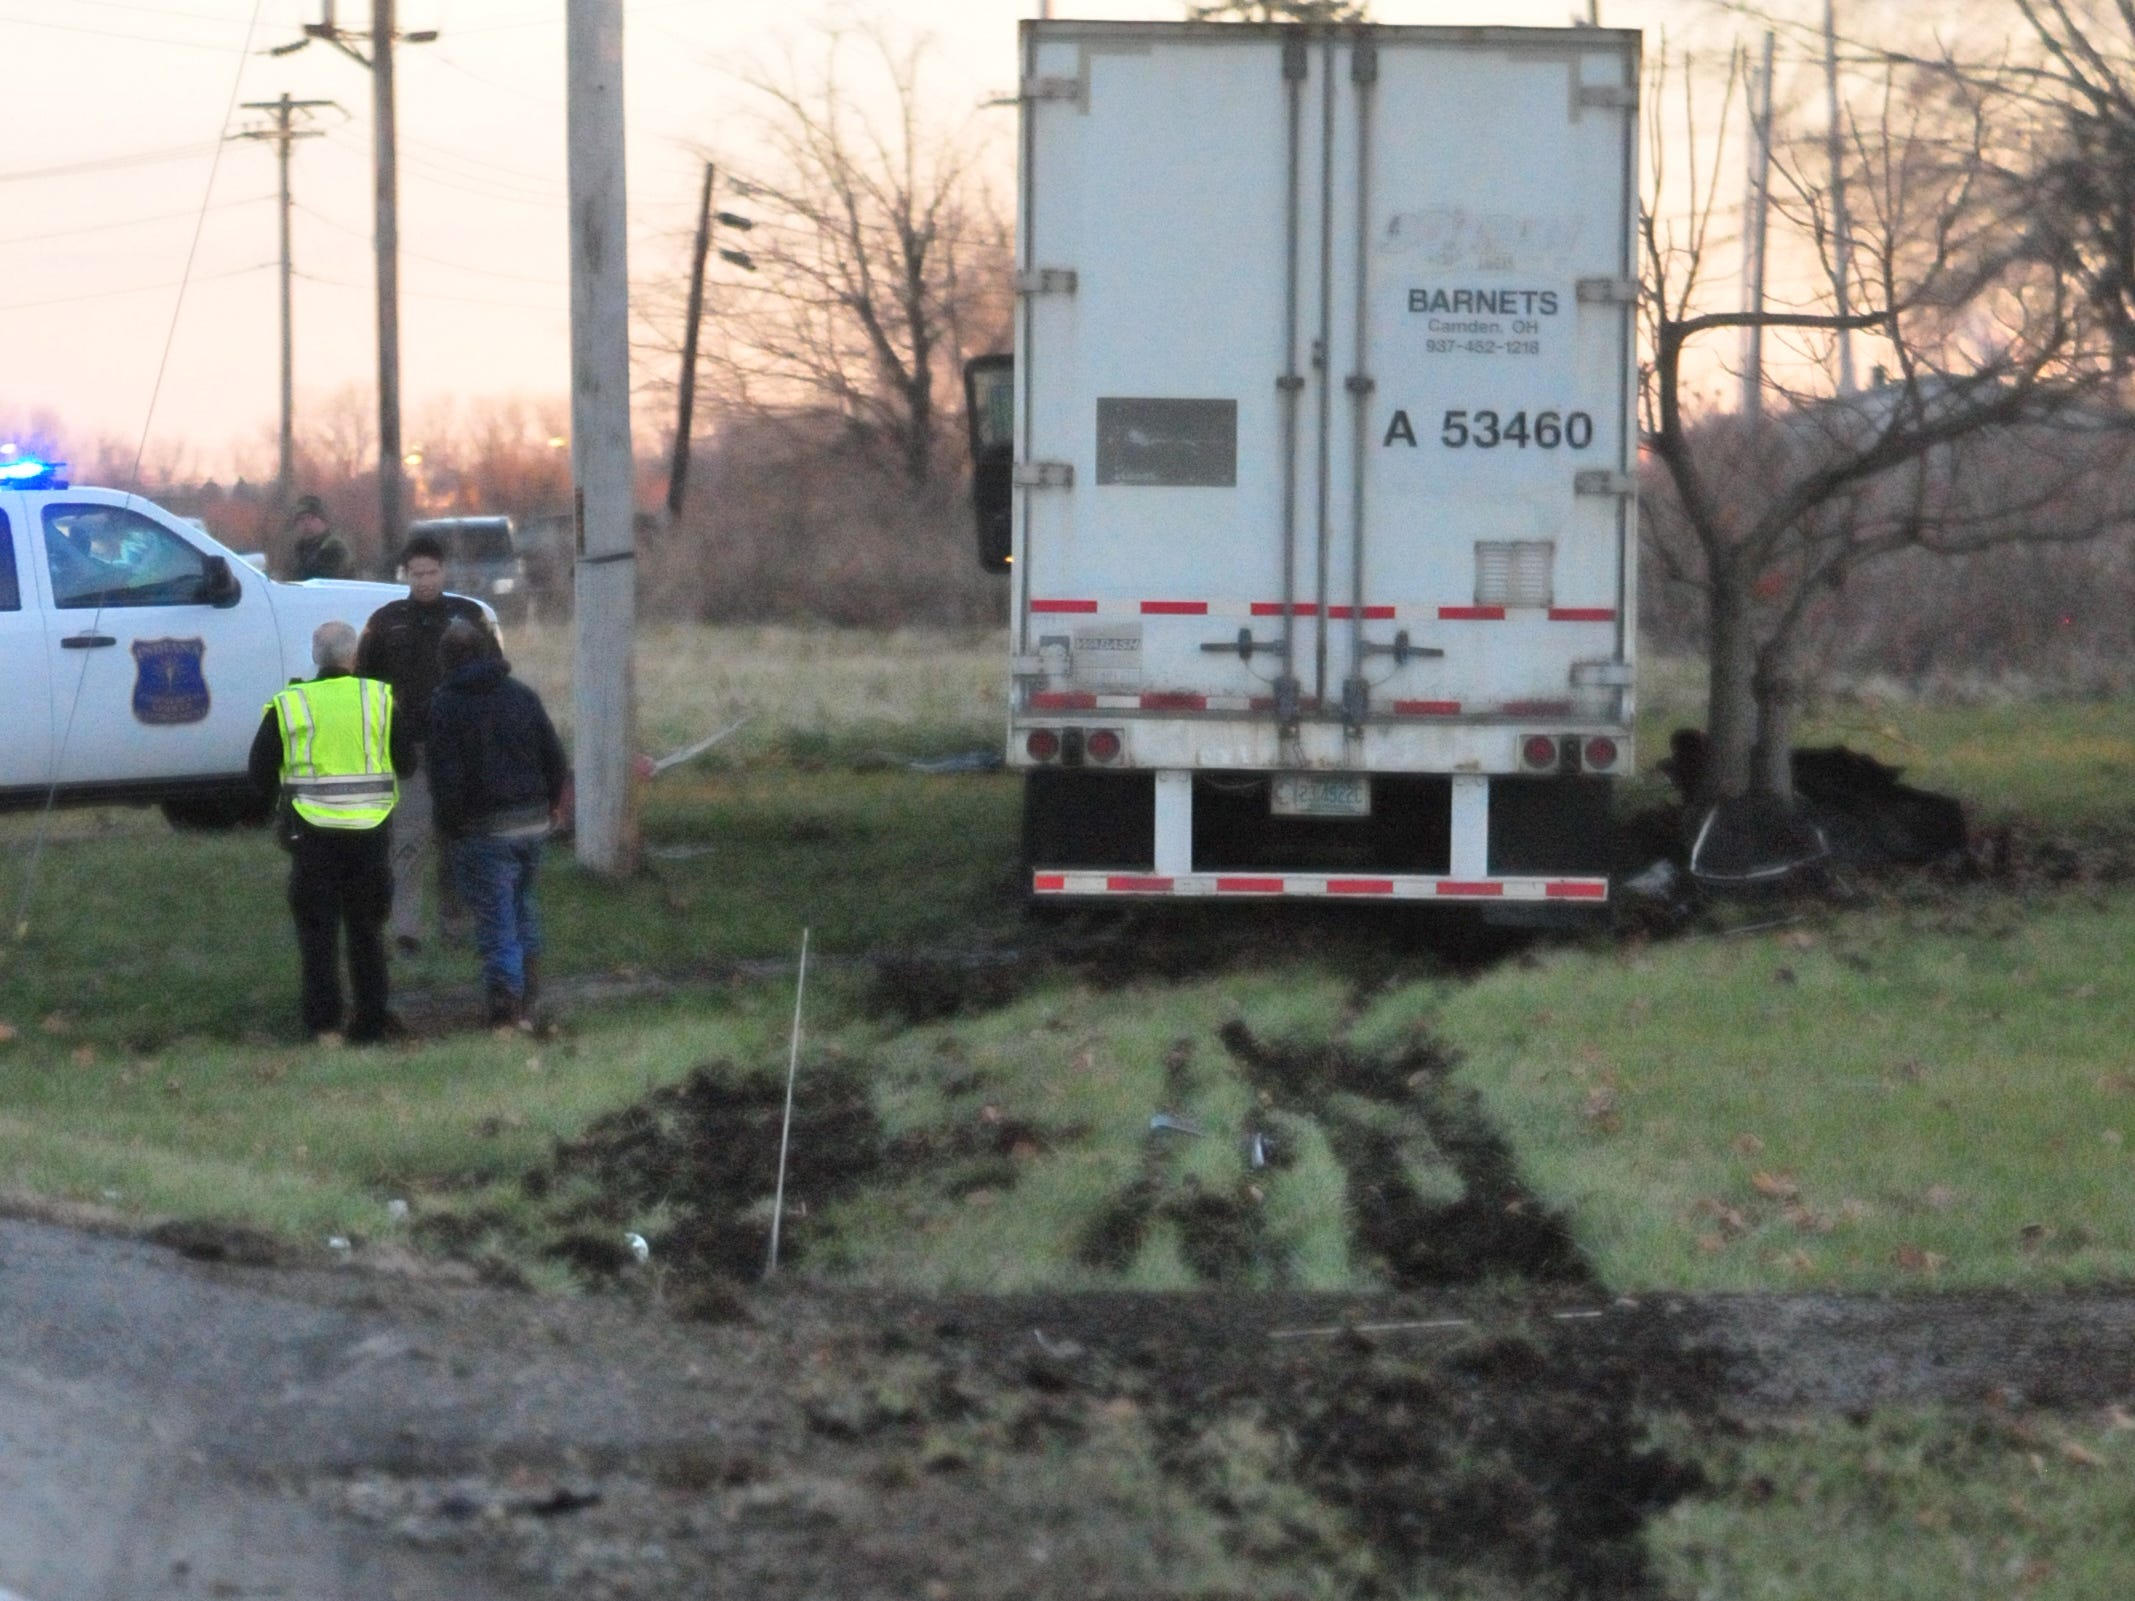 A semi tractor-trailer veered off the roadway between a utility pole and a tree Monday afternoon on U.S. 35.